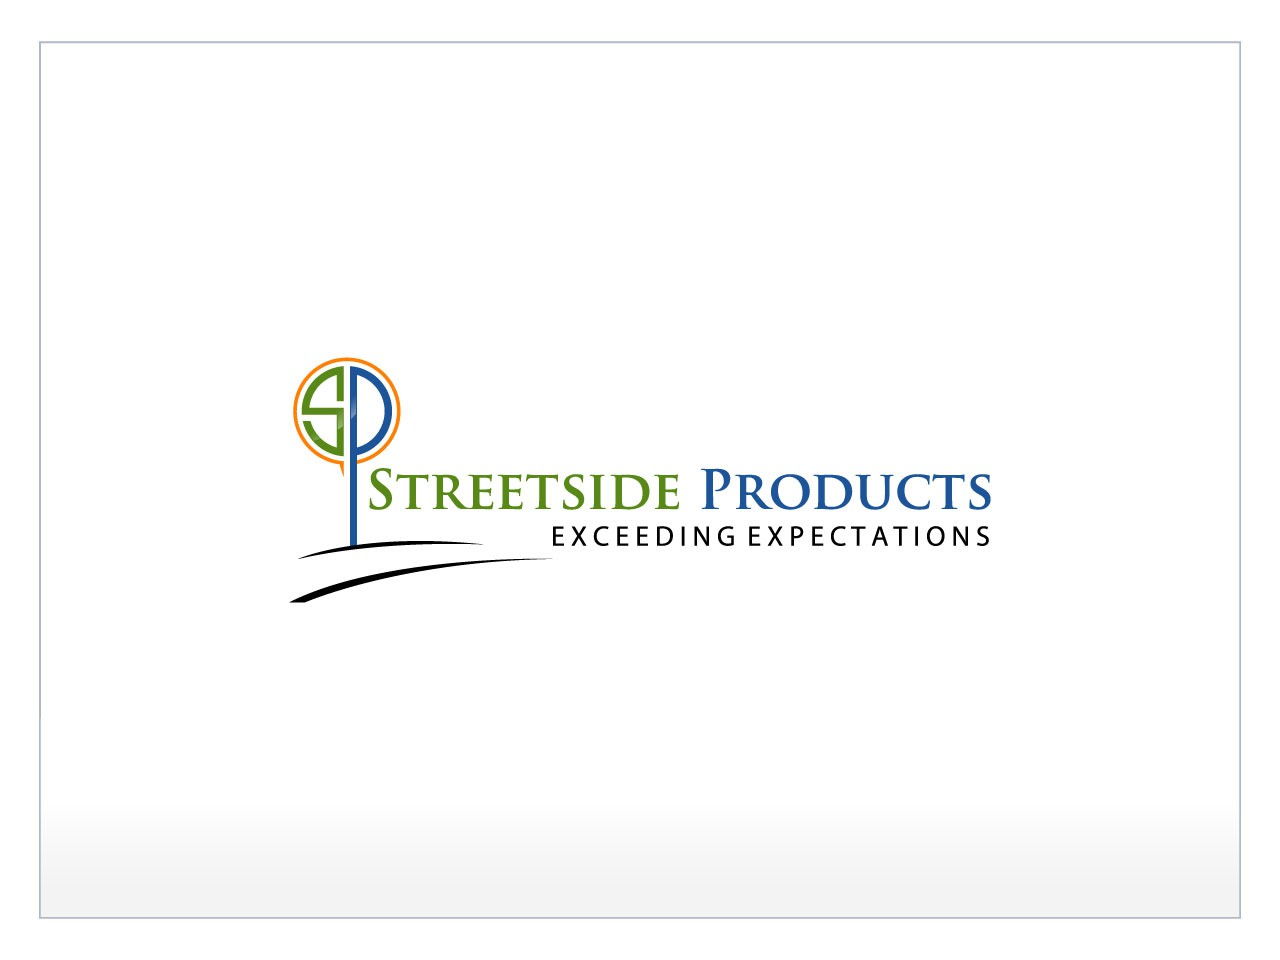 Create the next logo for Streetside Products